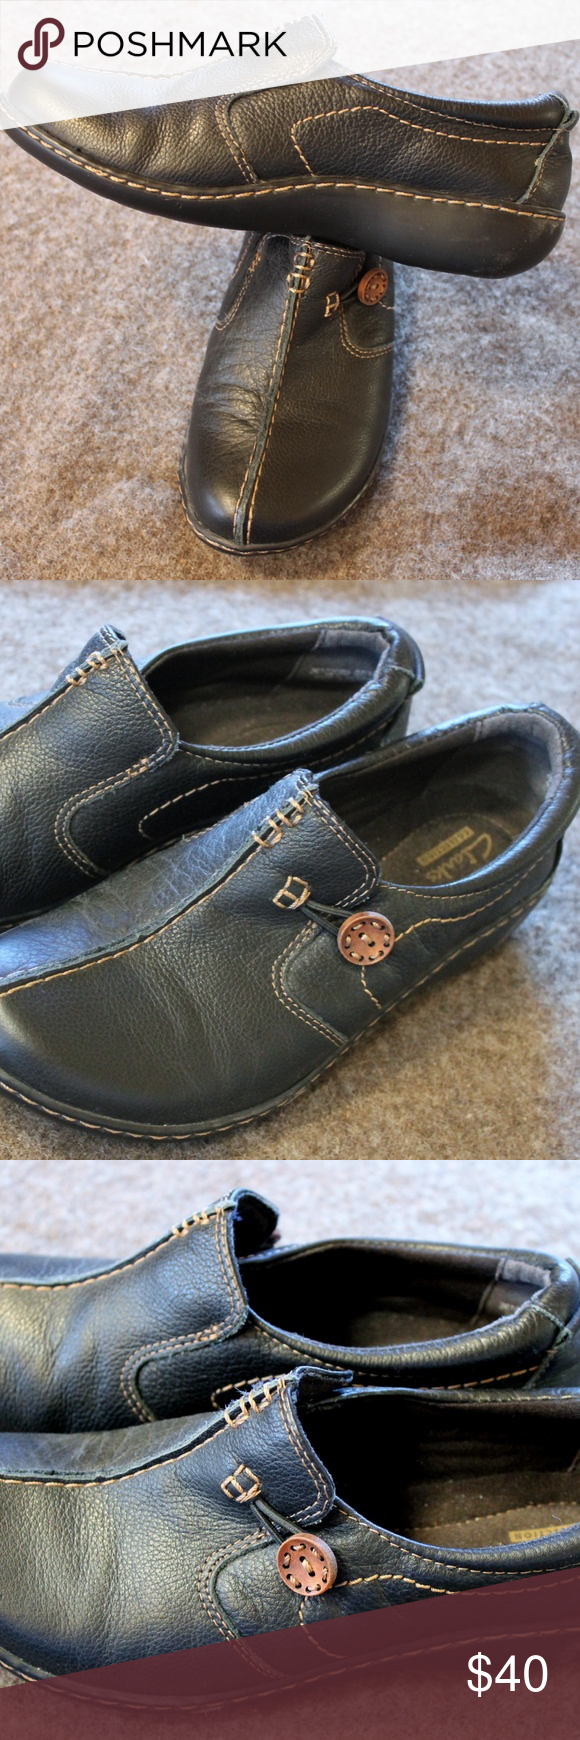 Clarks Un.Loop Side Button Shoes These shoes feature